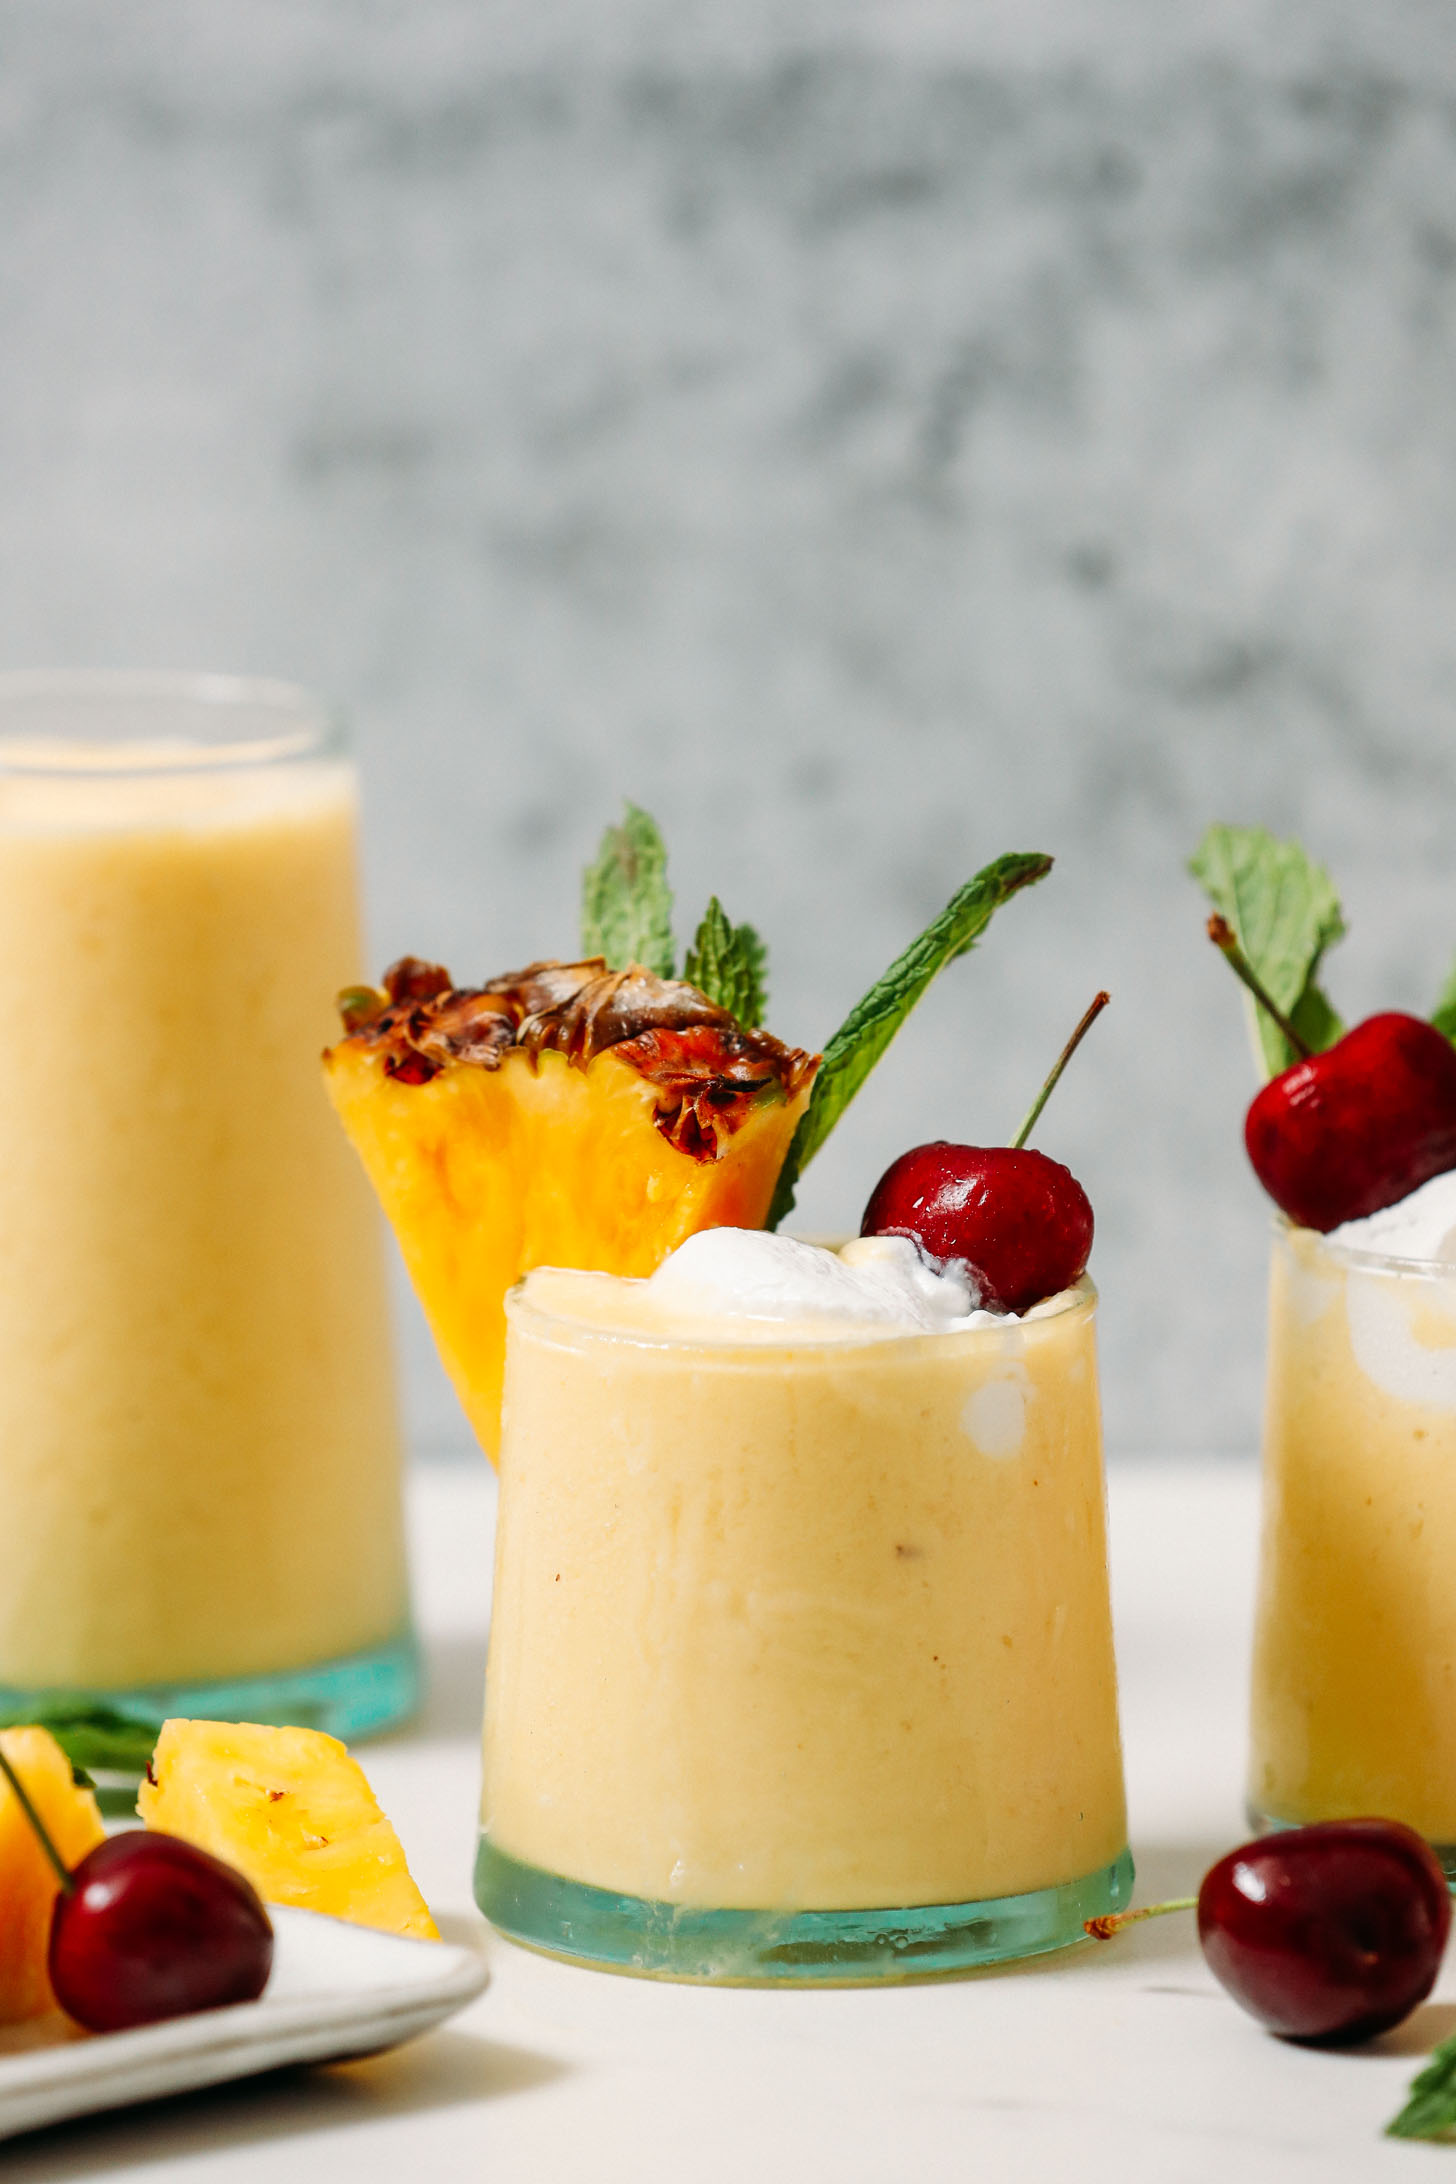 Glasses of our piña colada smoothie recipe